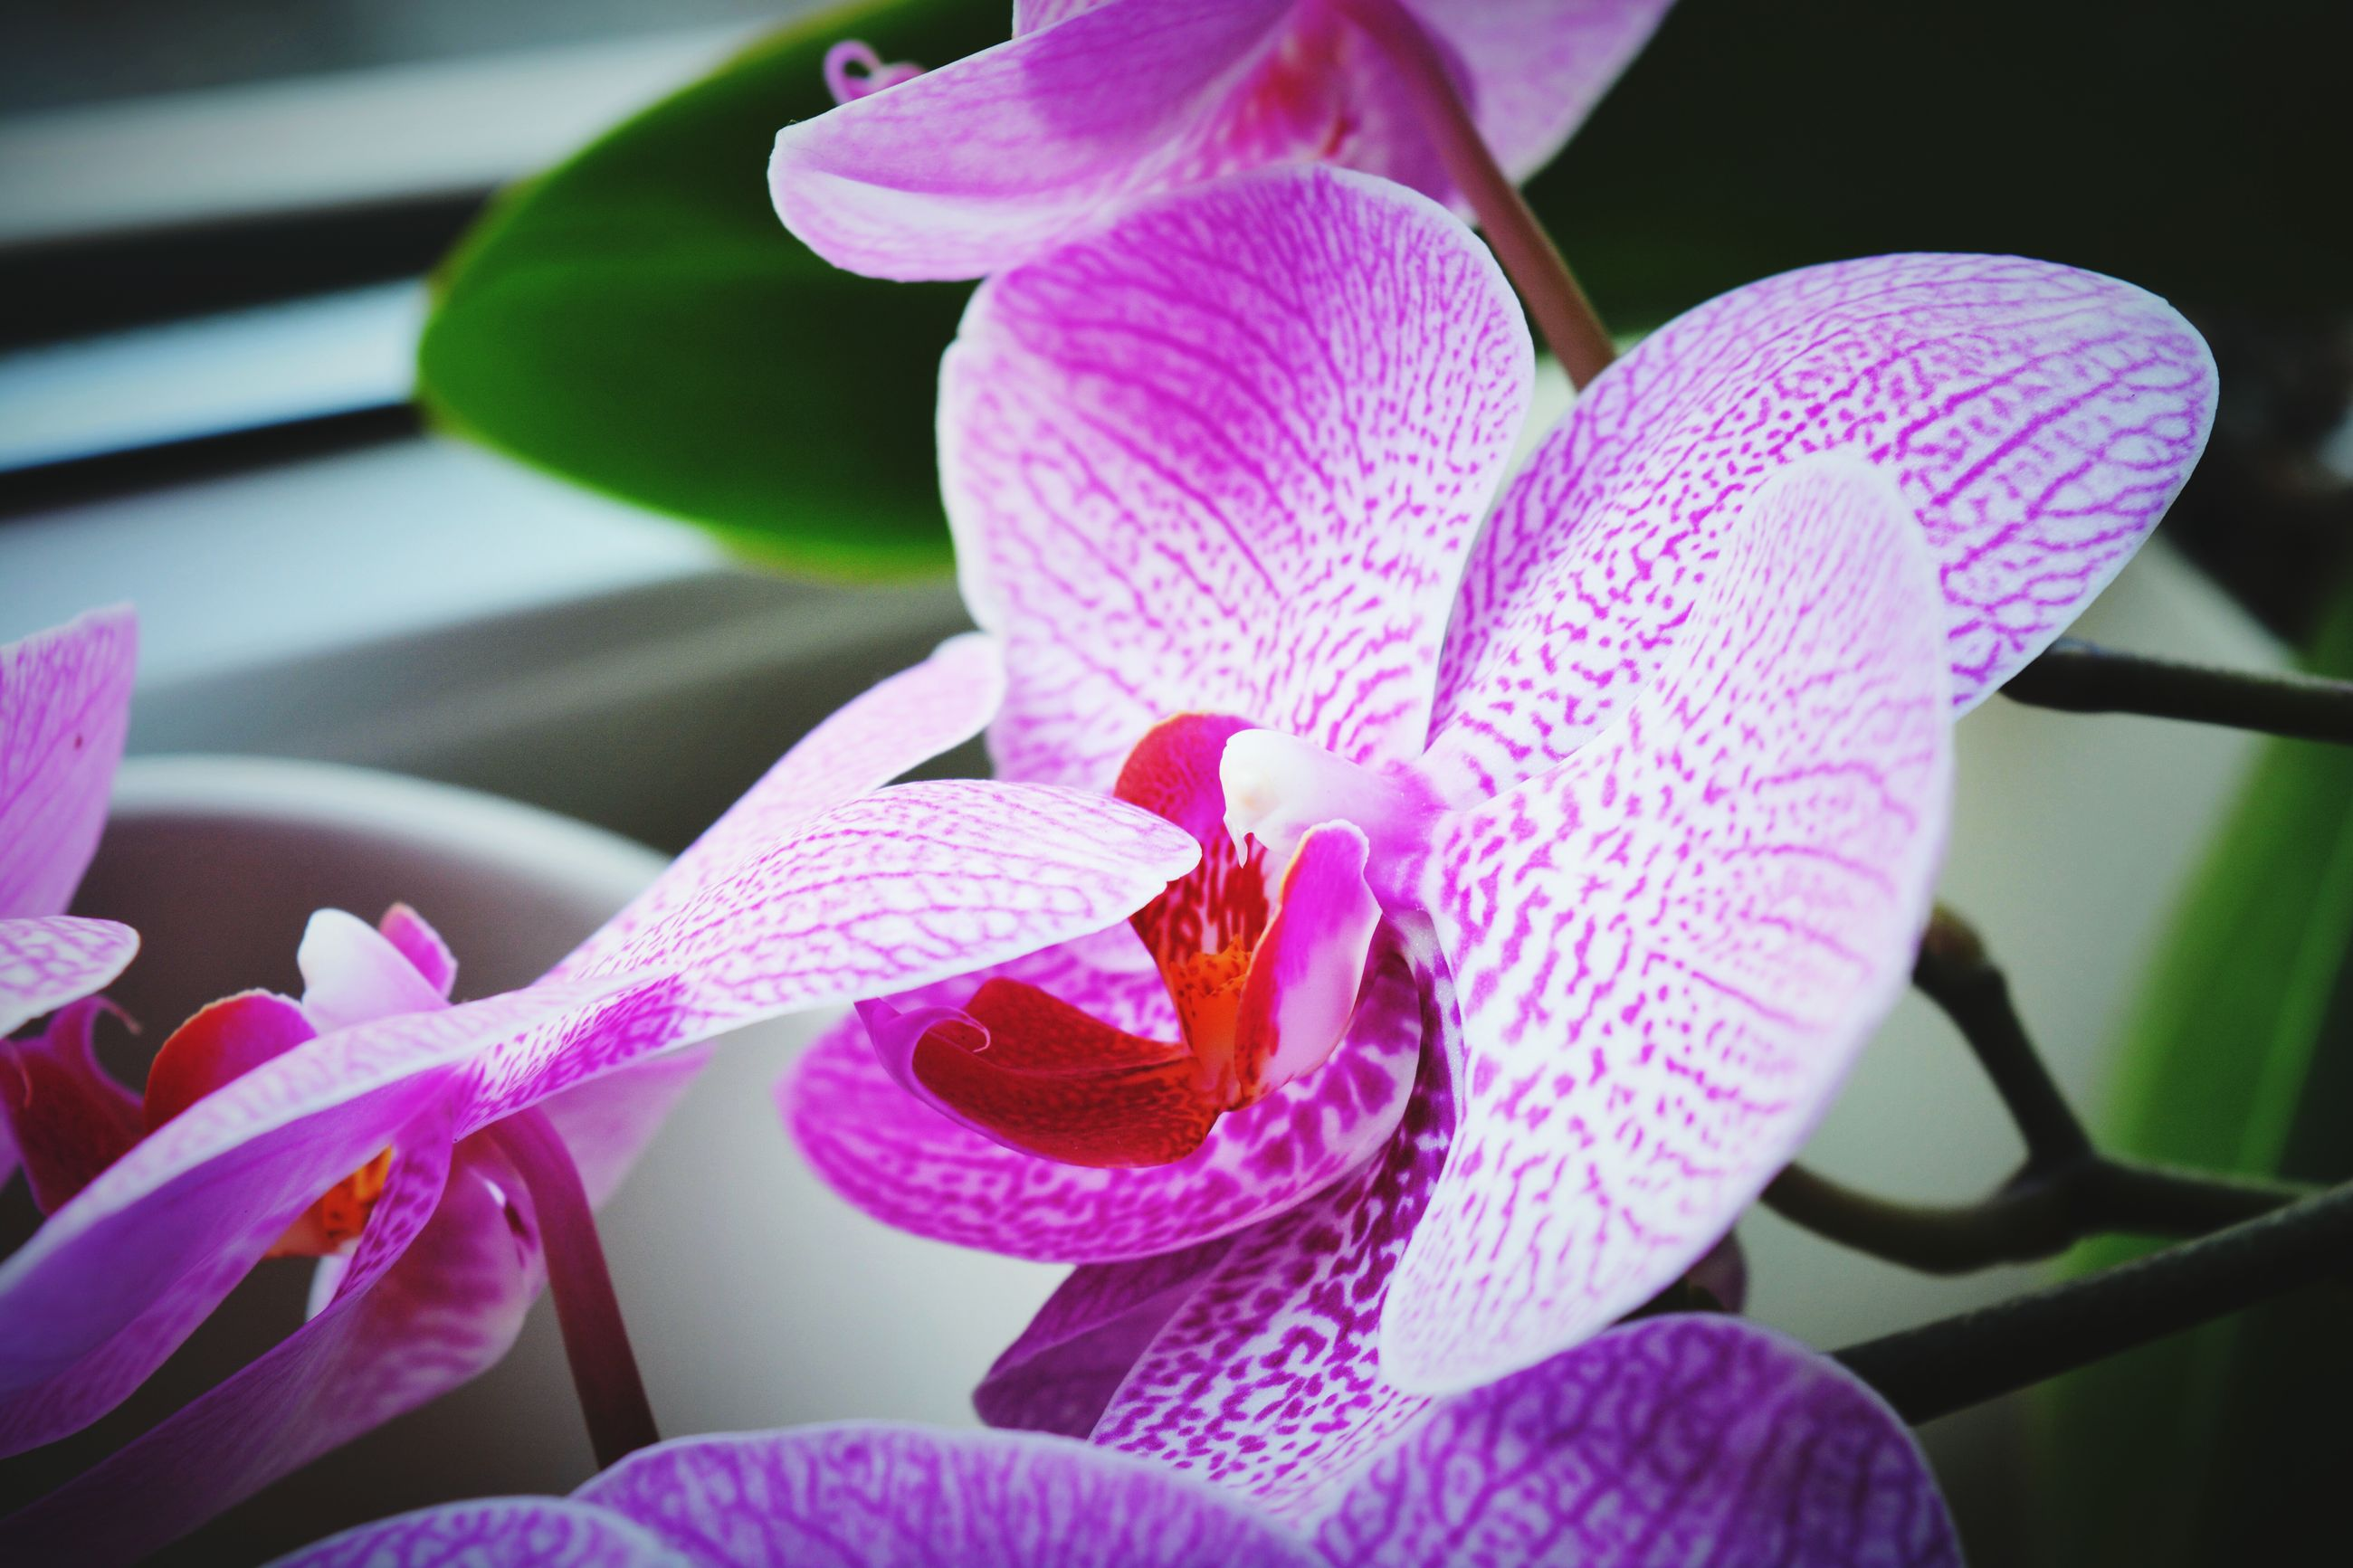 flower, petal, fragility, freshness, flower head, close-up, pink color, beauty in nature, growth, purple, nature, focus on foreground, blooming, plant, orchid, in bloom, no people, stamen, pollen, single flower